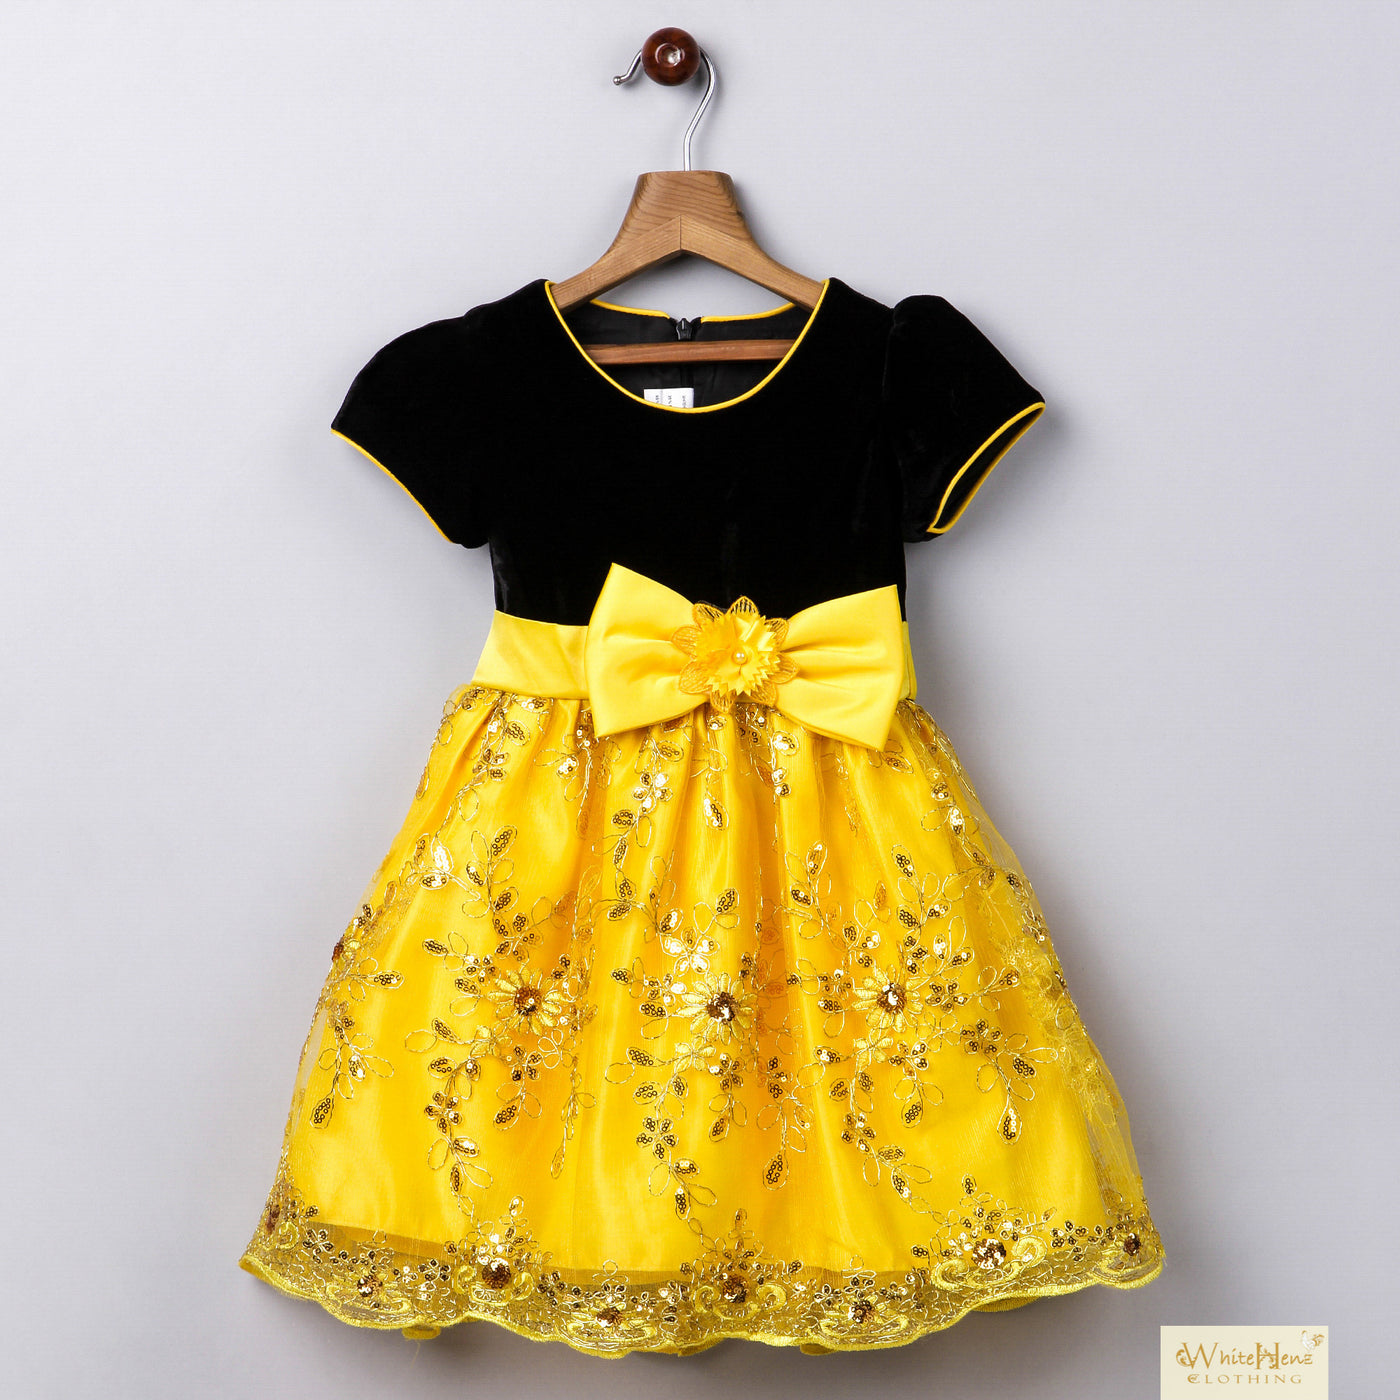 6a70d49a4223 Whitehenz Clothing Girls Black and Yellow Dark Night Sequin Love Party –  Munchkinz